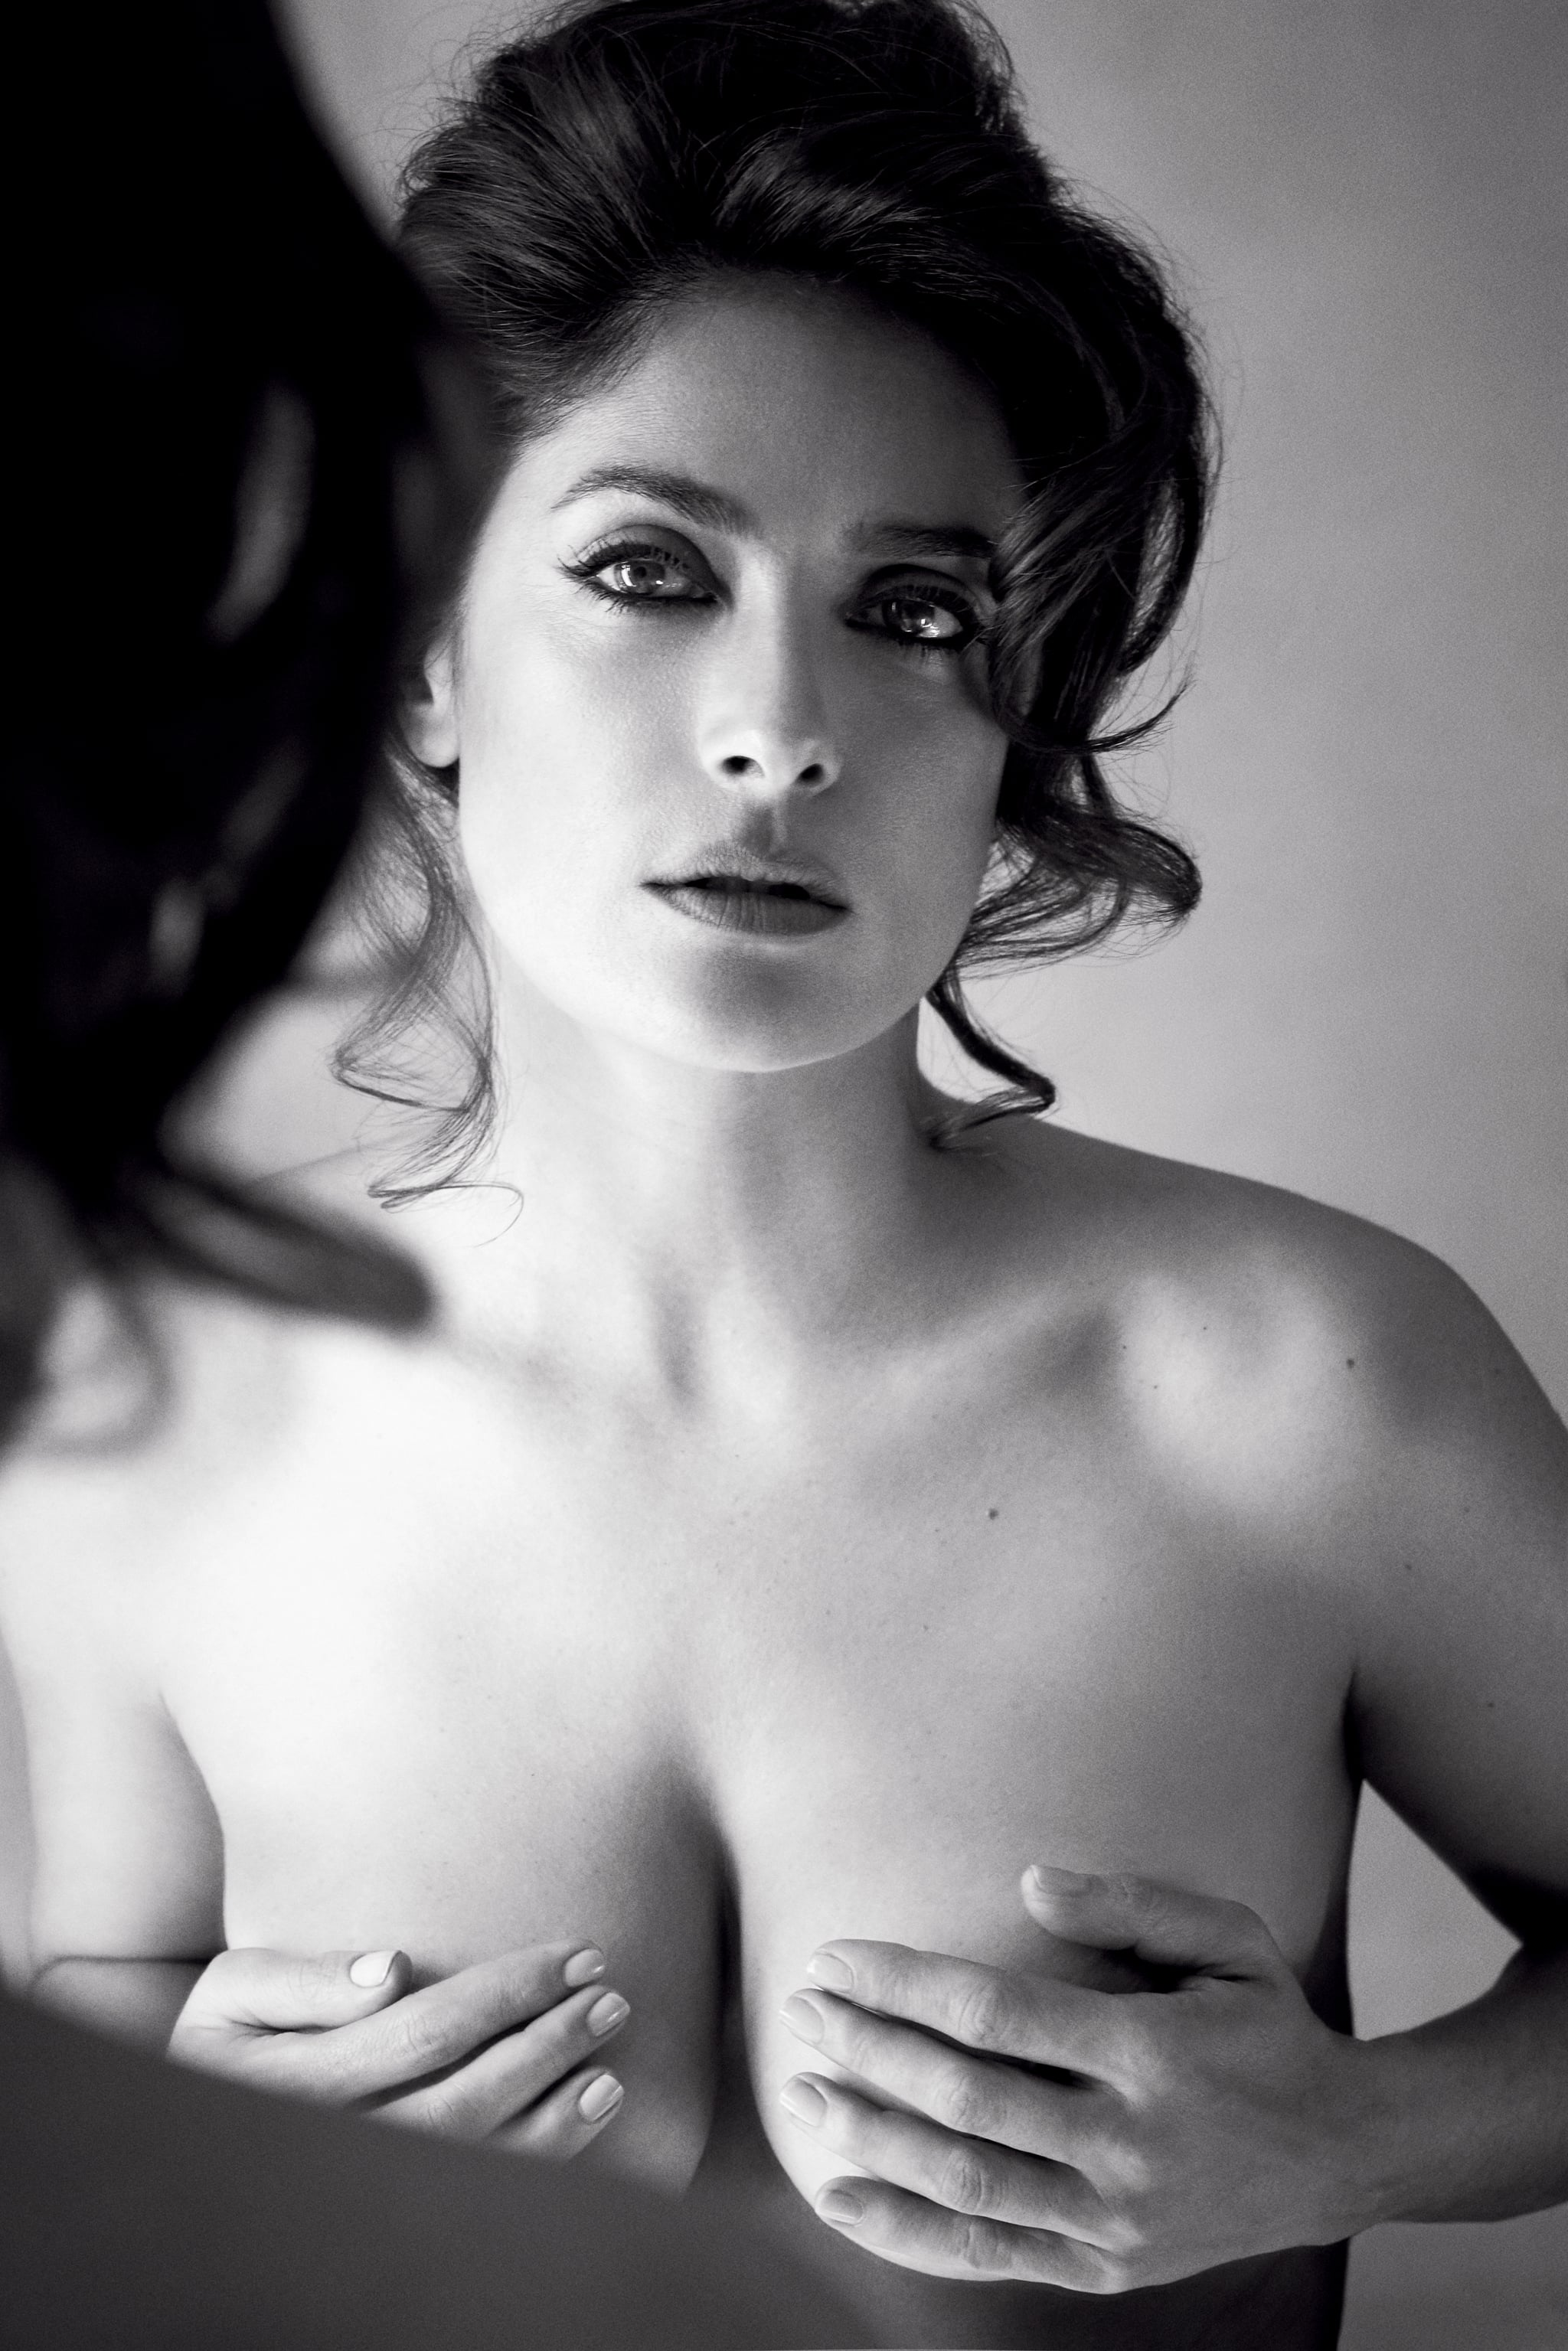 Salma Hayek Goes Topless: At My Age, Its Exciting - E